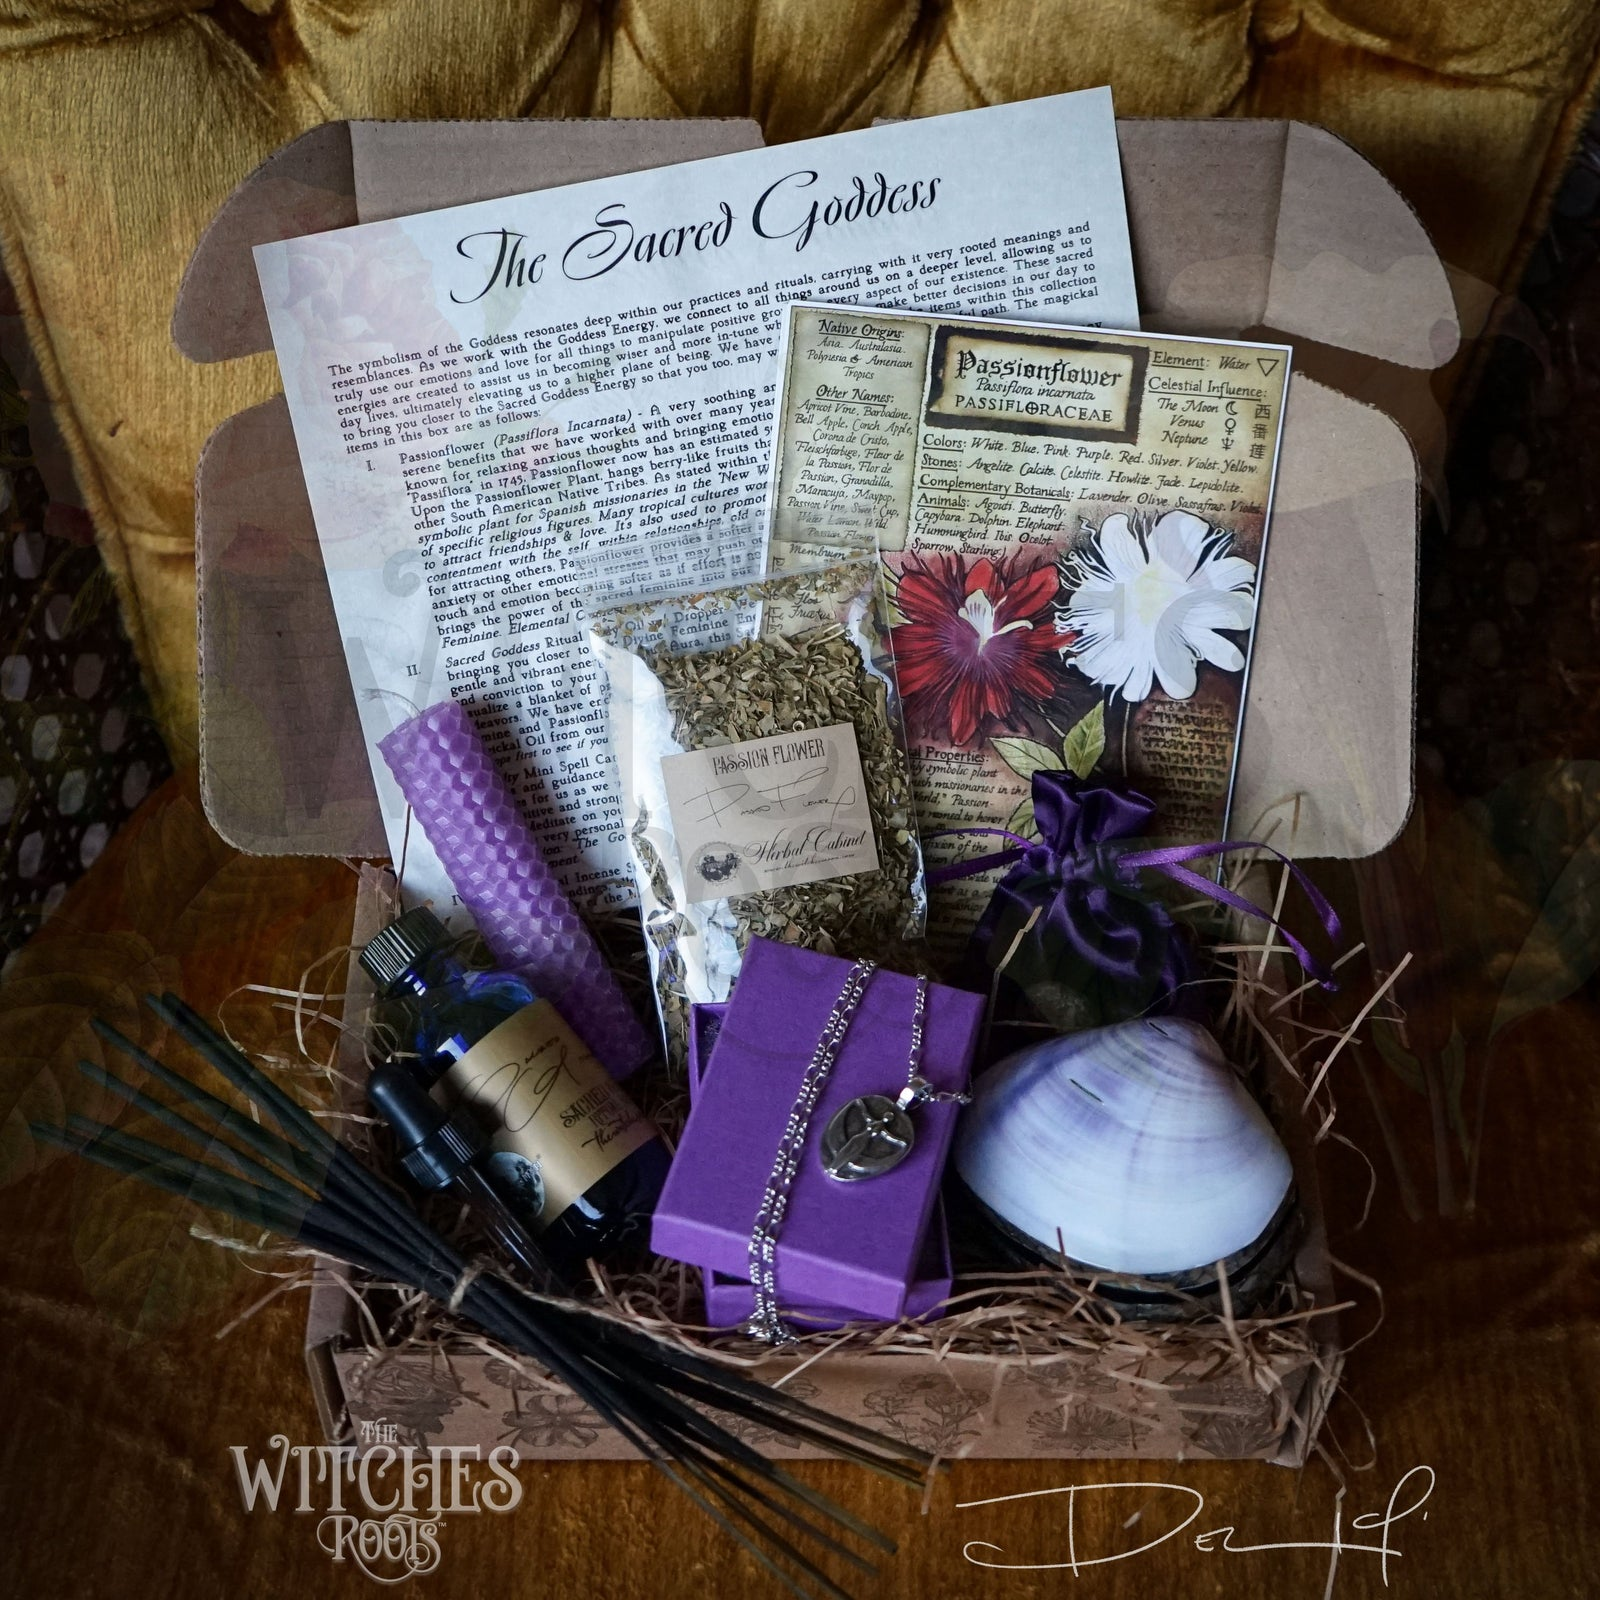 The Witches Roots™ - The Sacred Goddess - December 2019